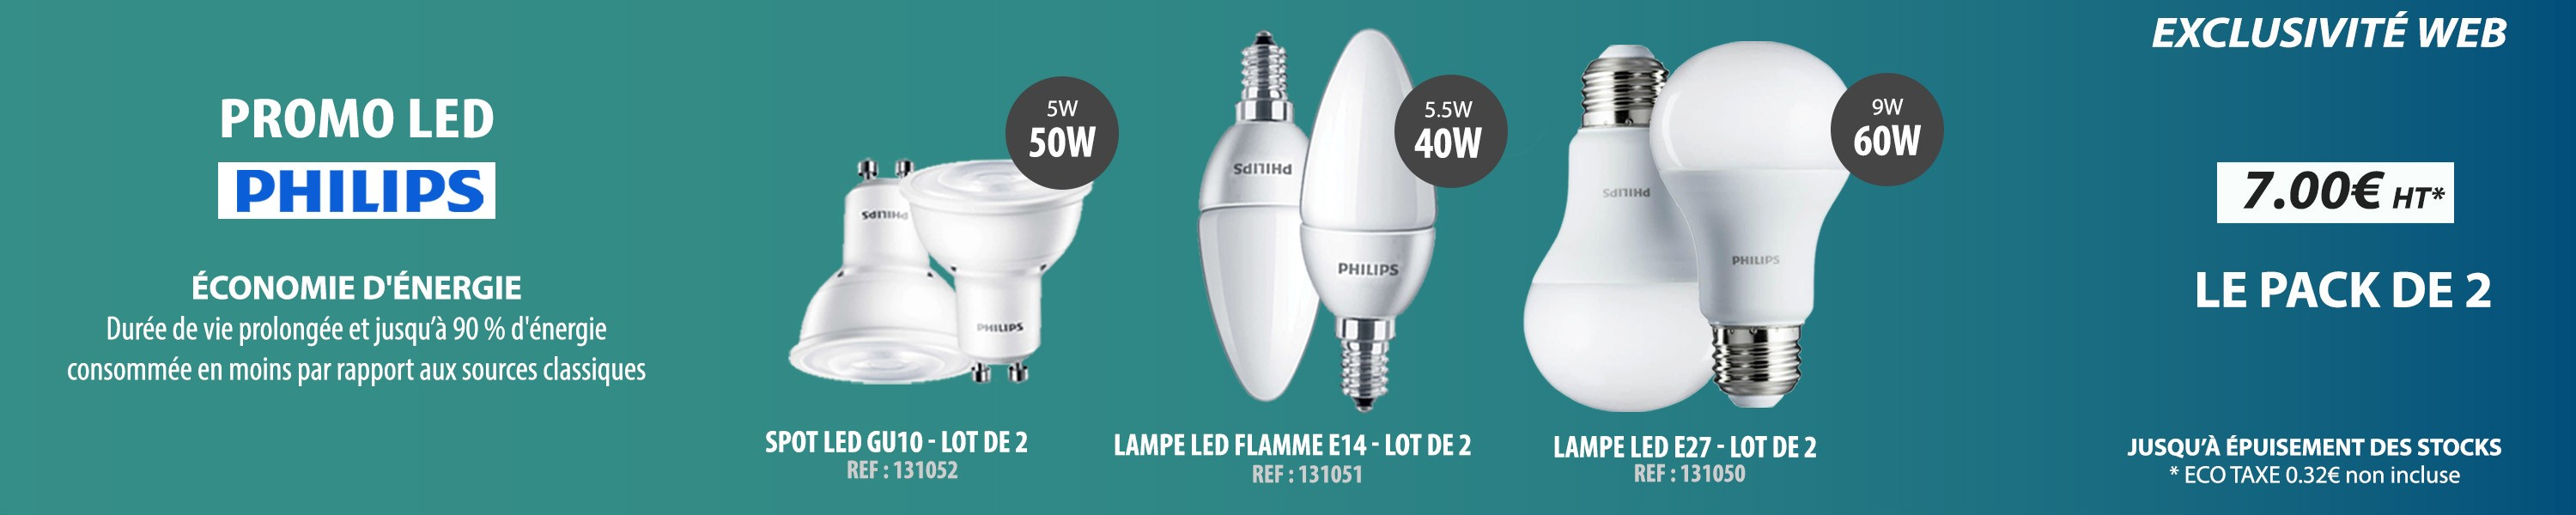 Le pack de 2 lampes LED philips